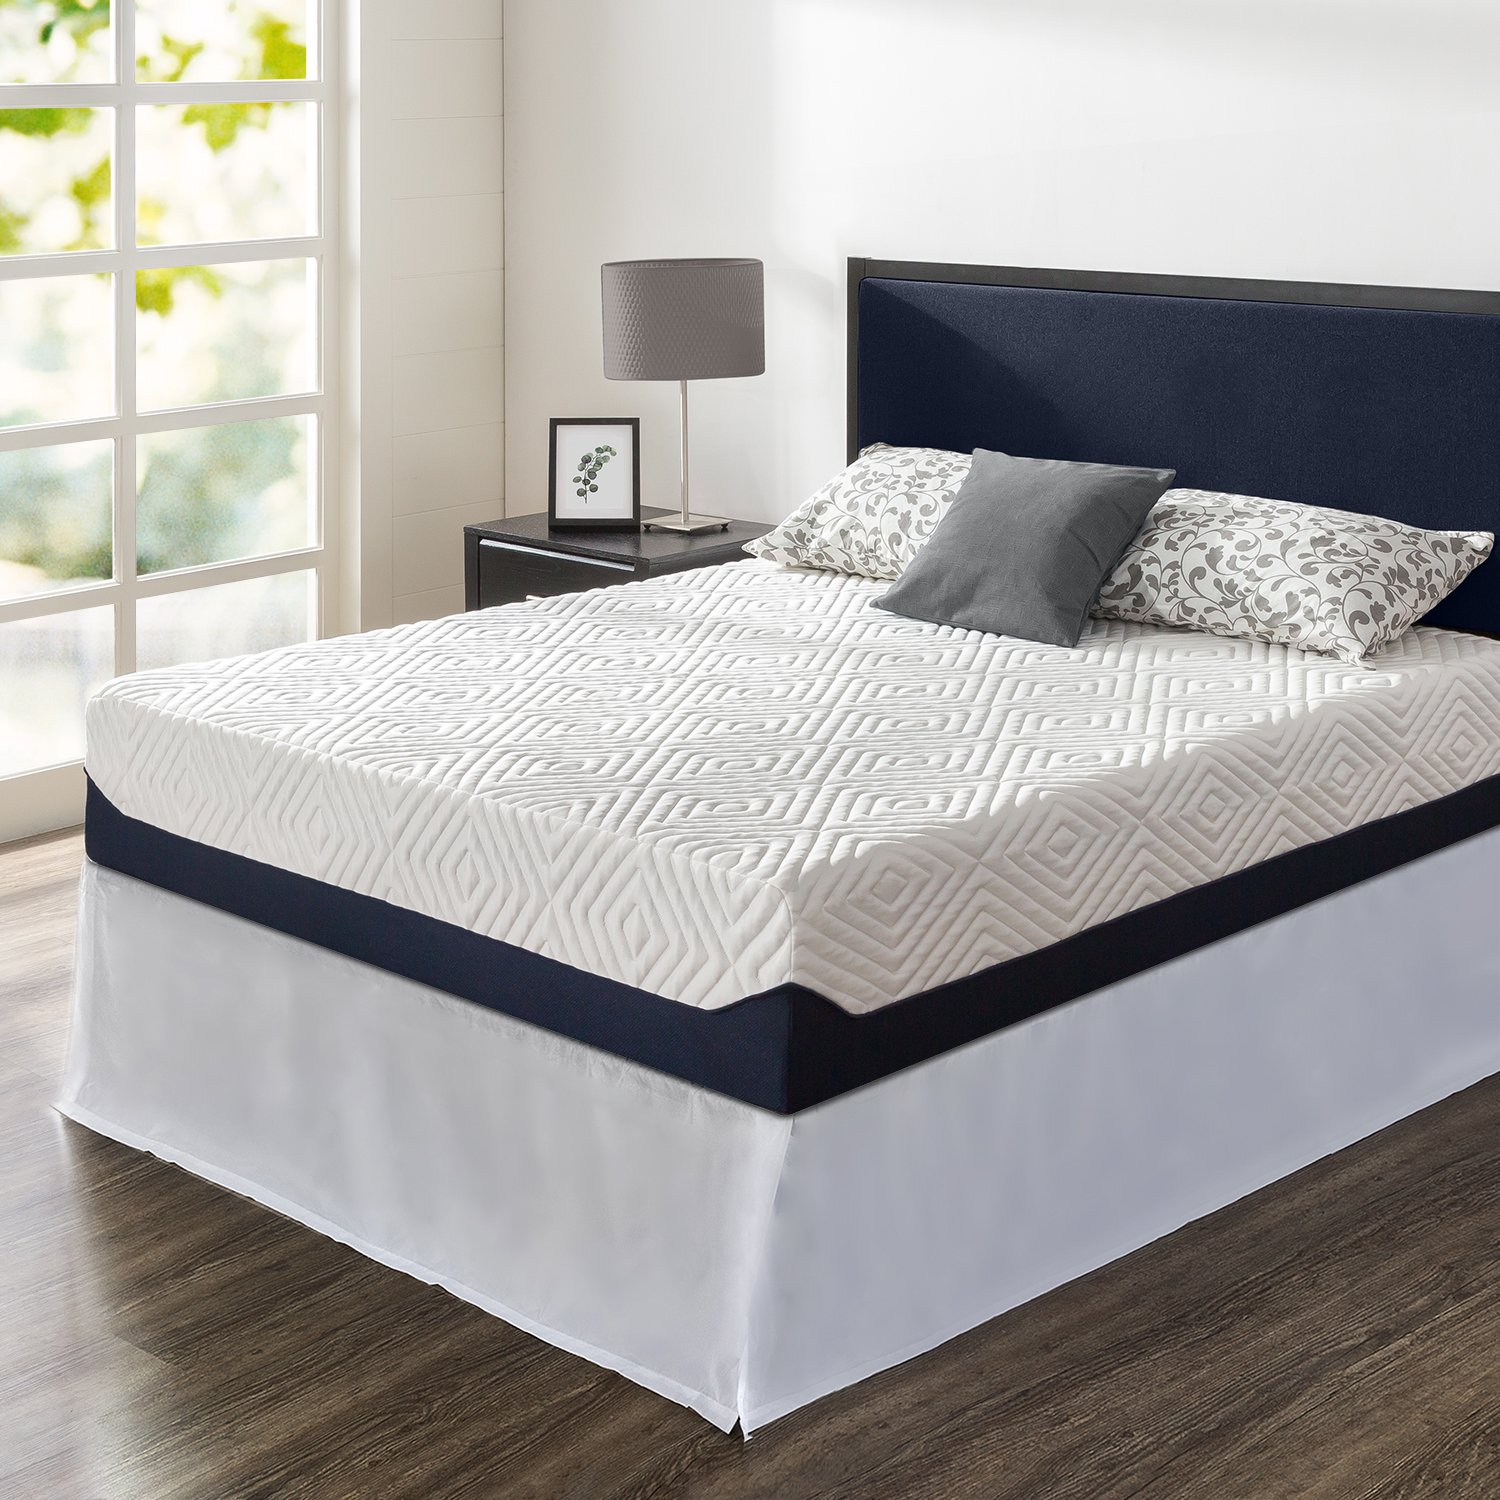 Zinus Night Therapy 12in Full Size Mattress Breathable